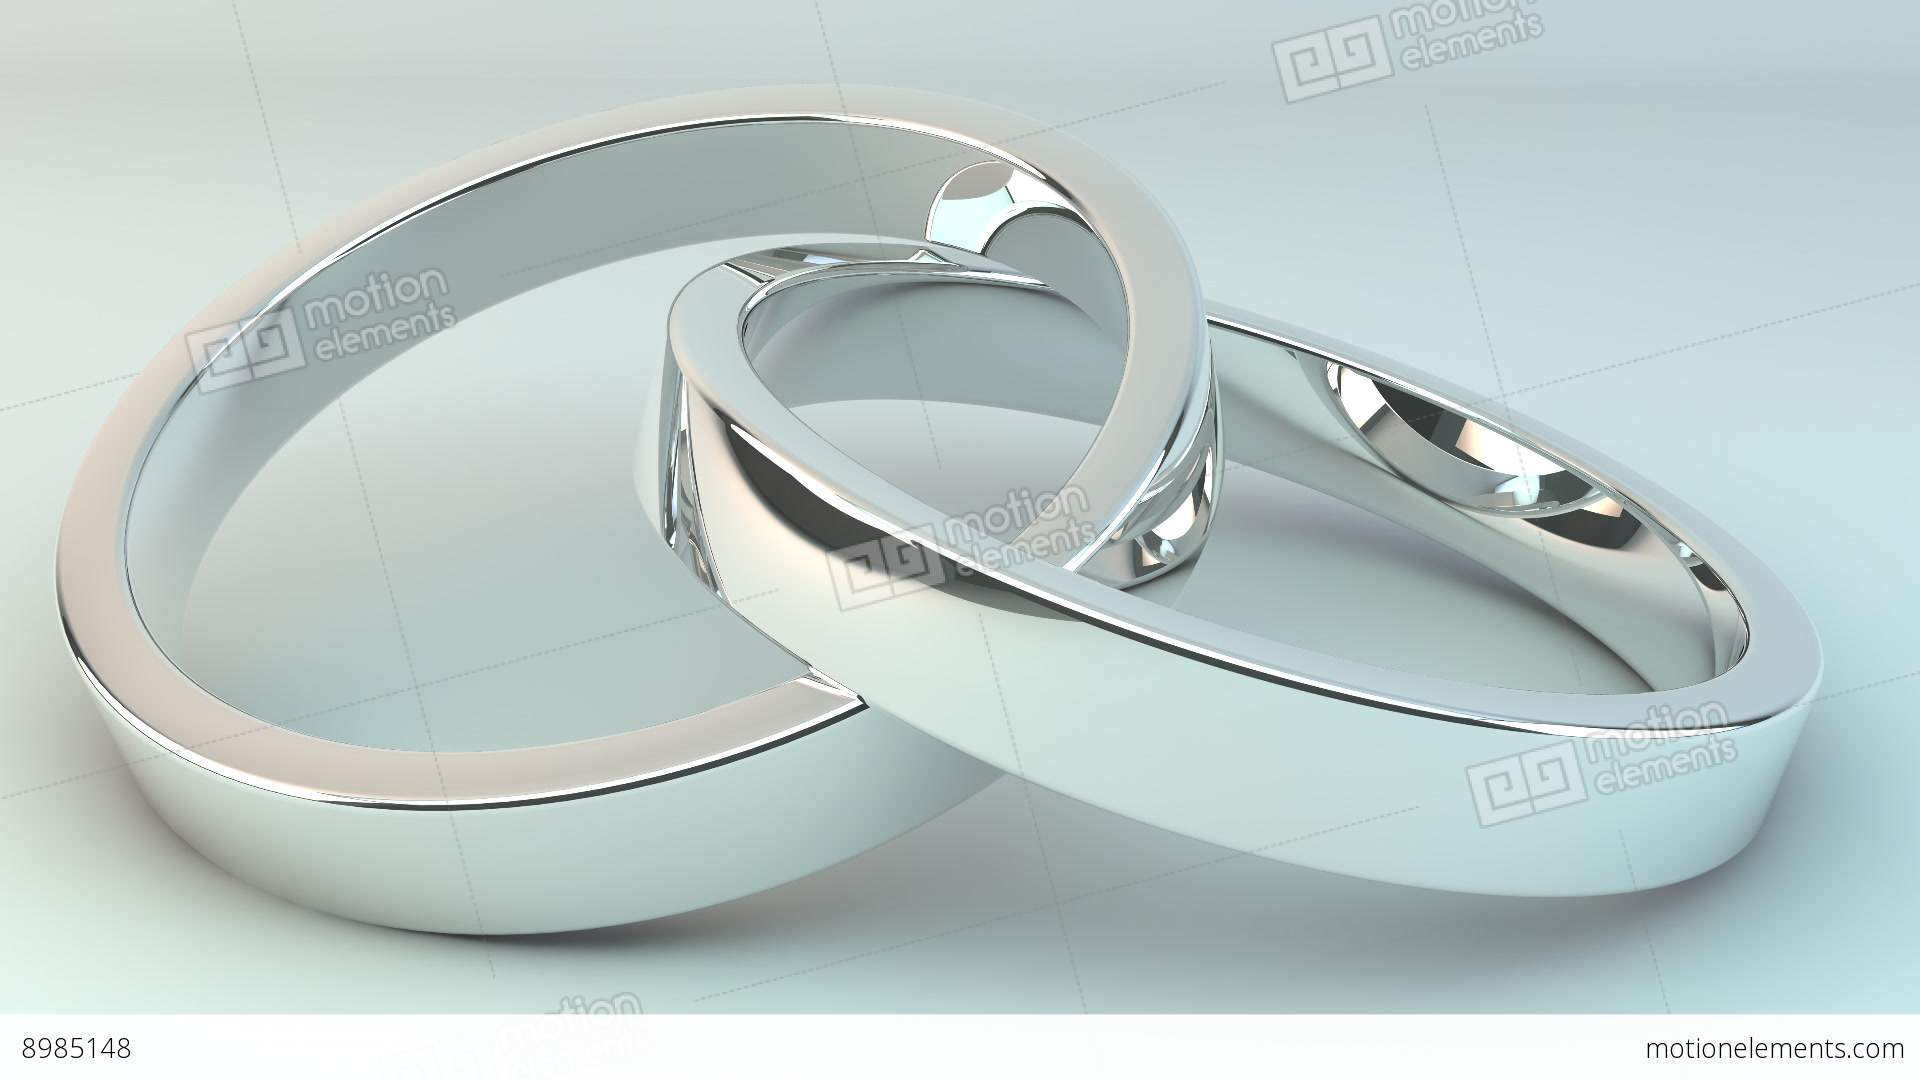 wedding rings joined together against a white background